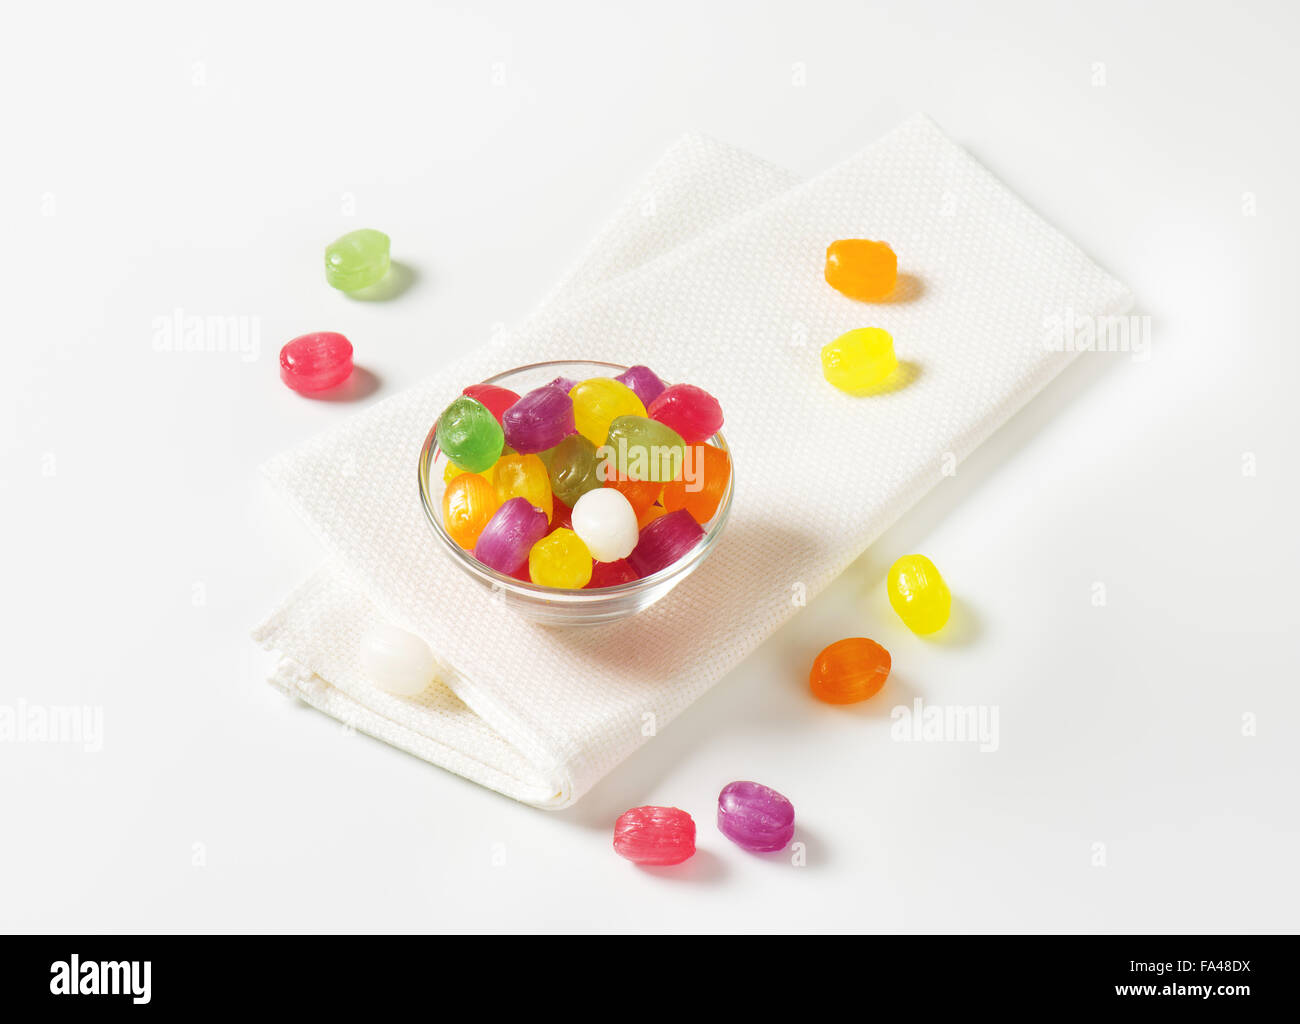 Fruit flavored hard candy drops - Stock Image